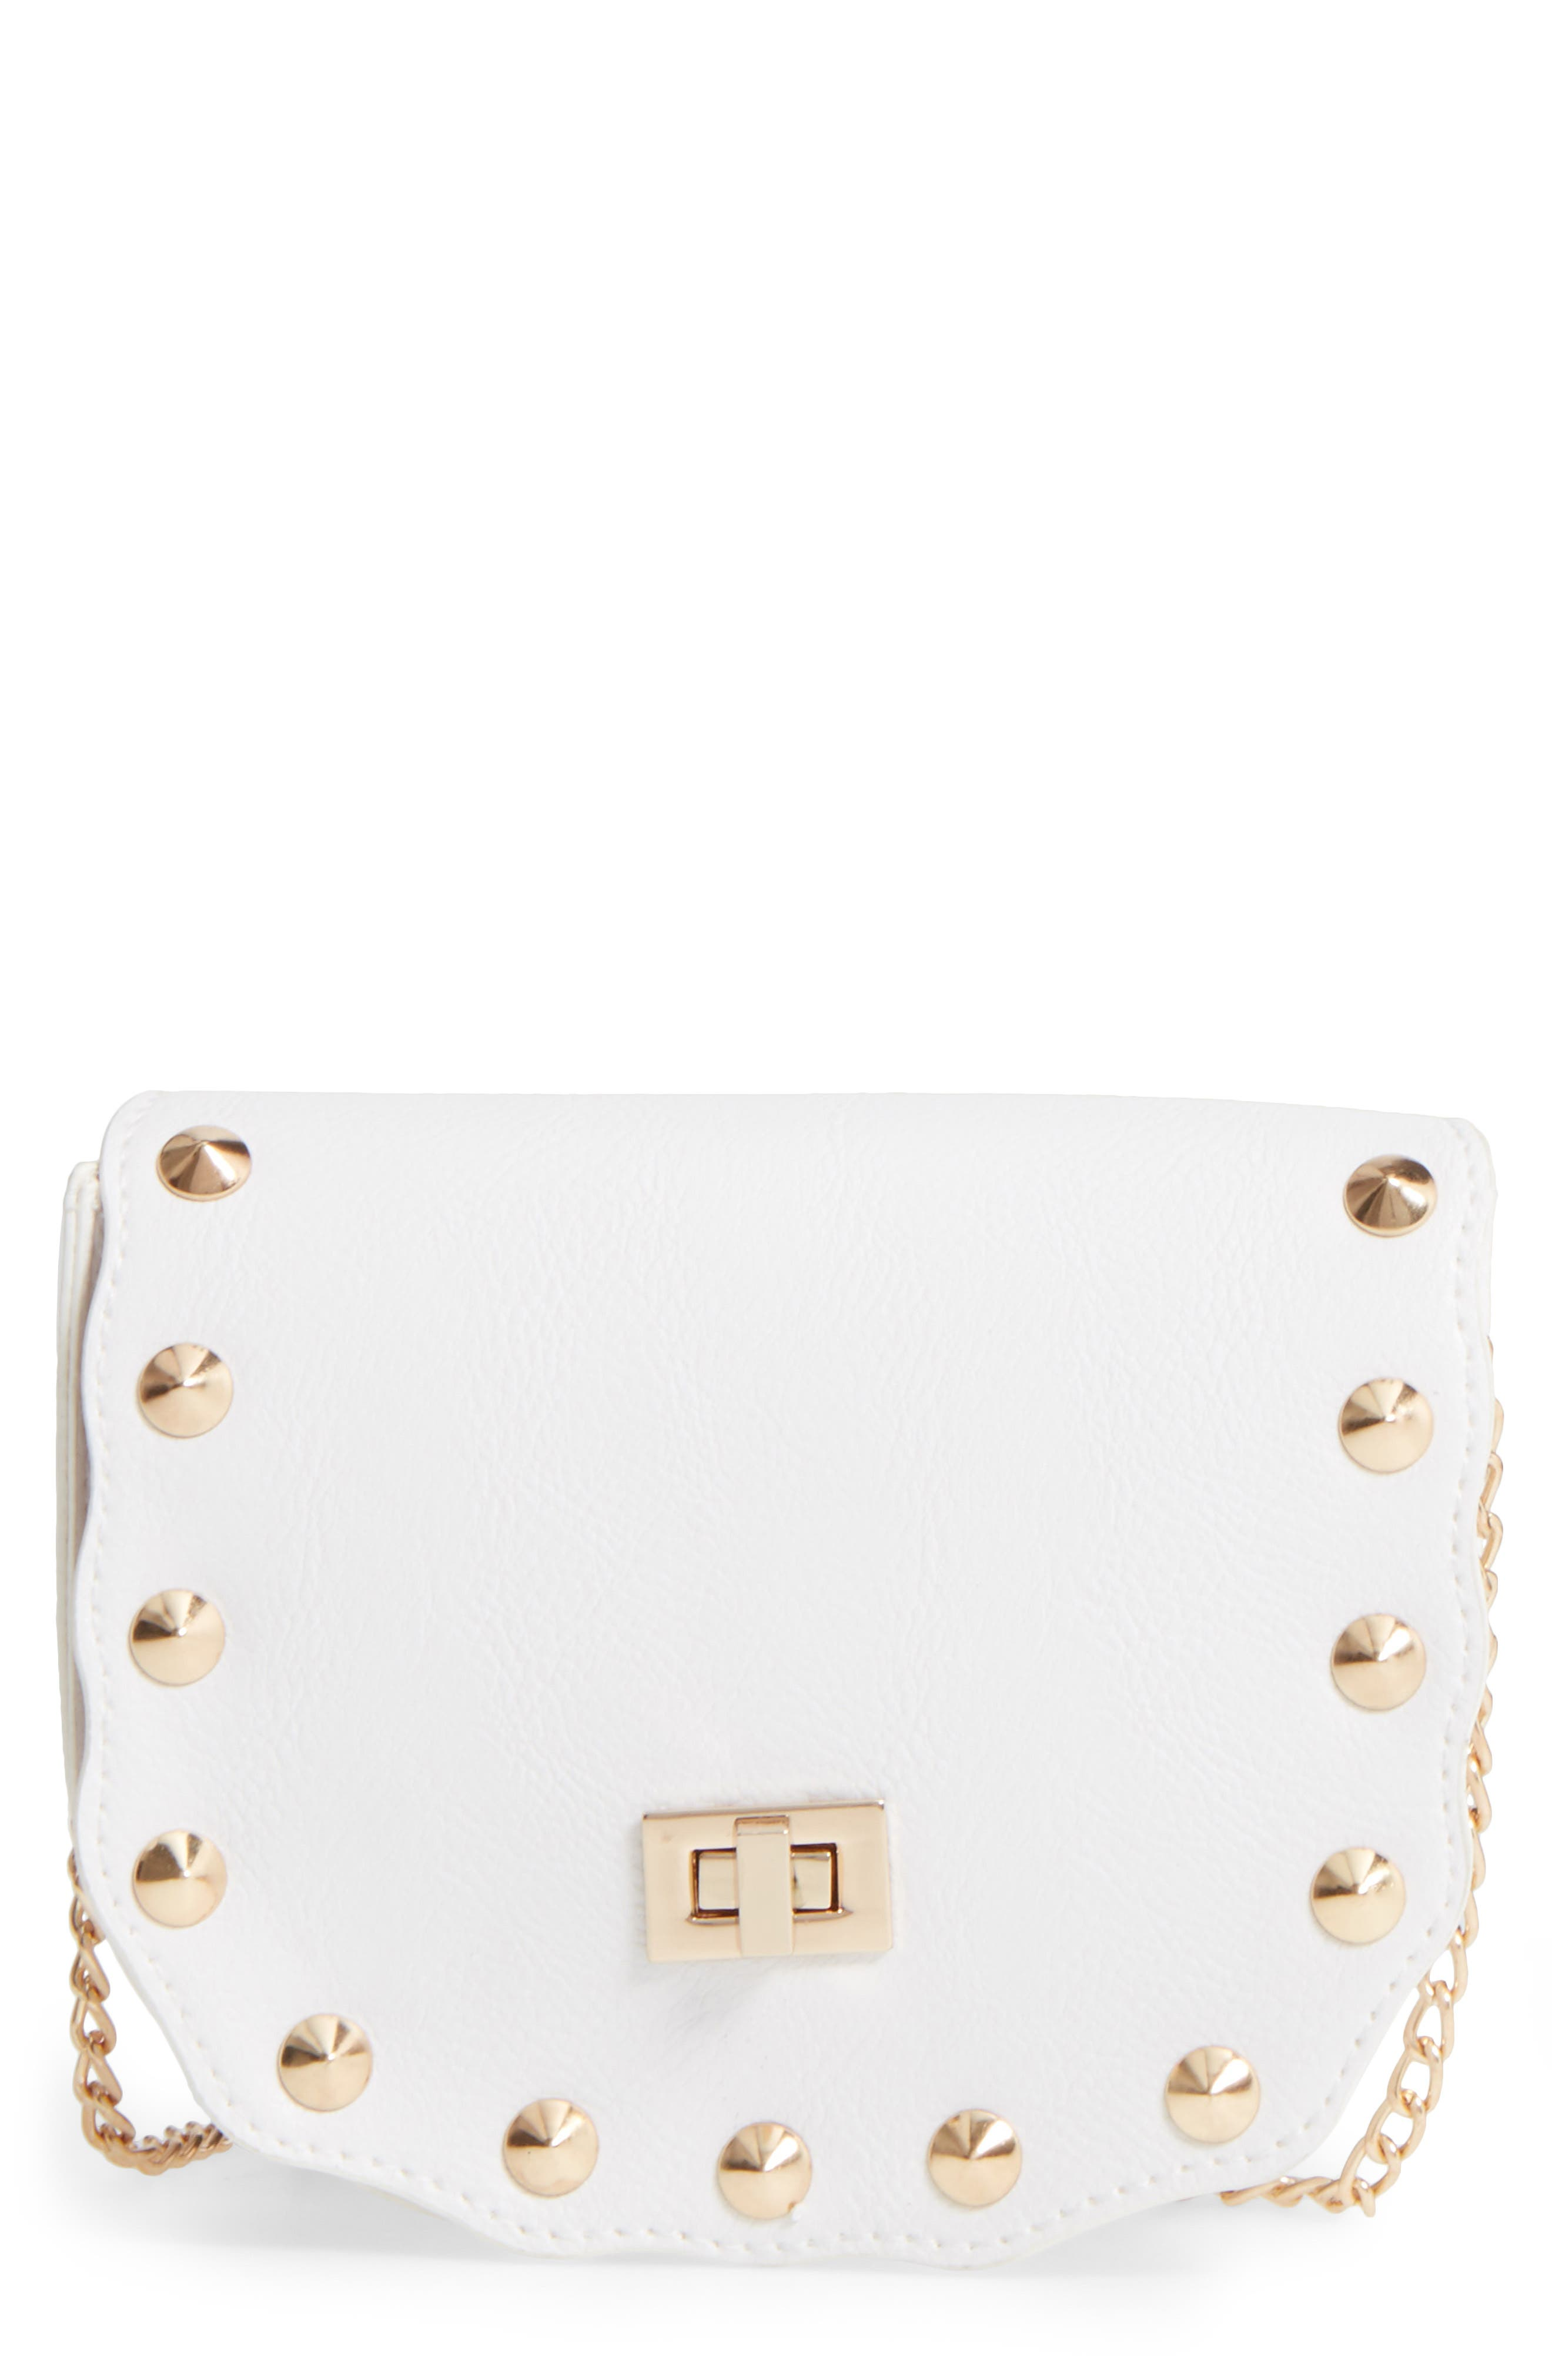 CAPELLI OF NEW YORK Faux Leather Shoulder Bag